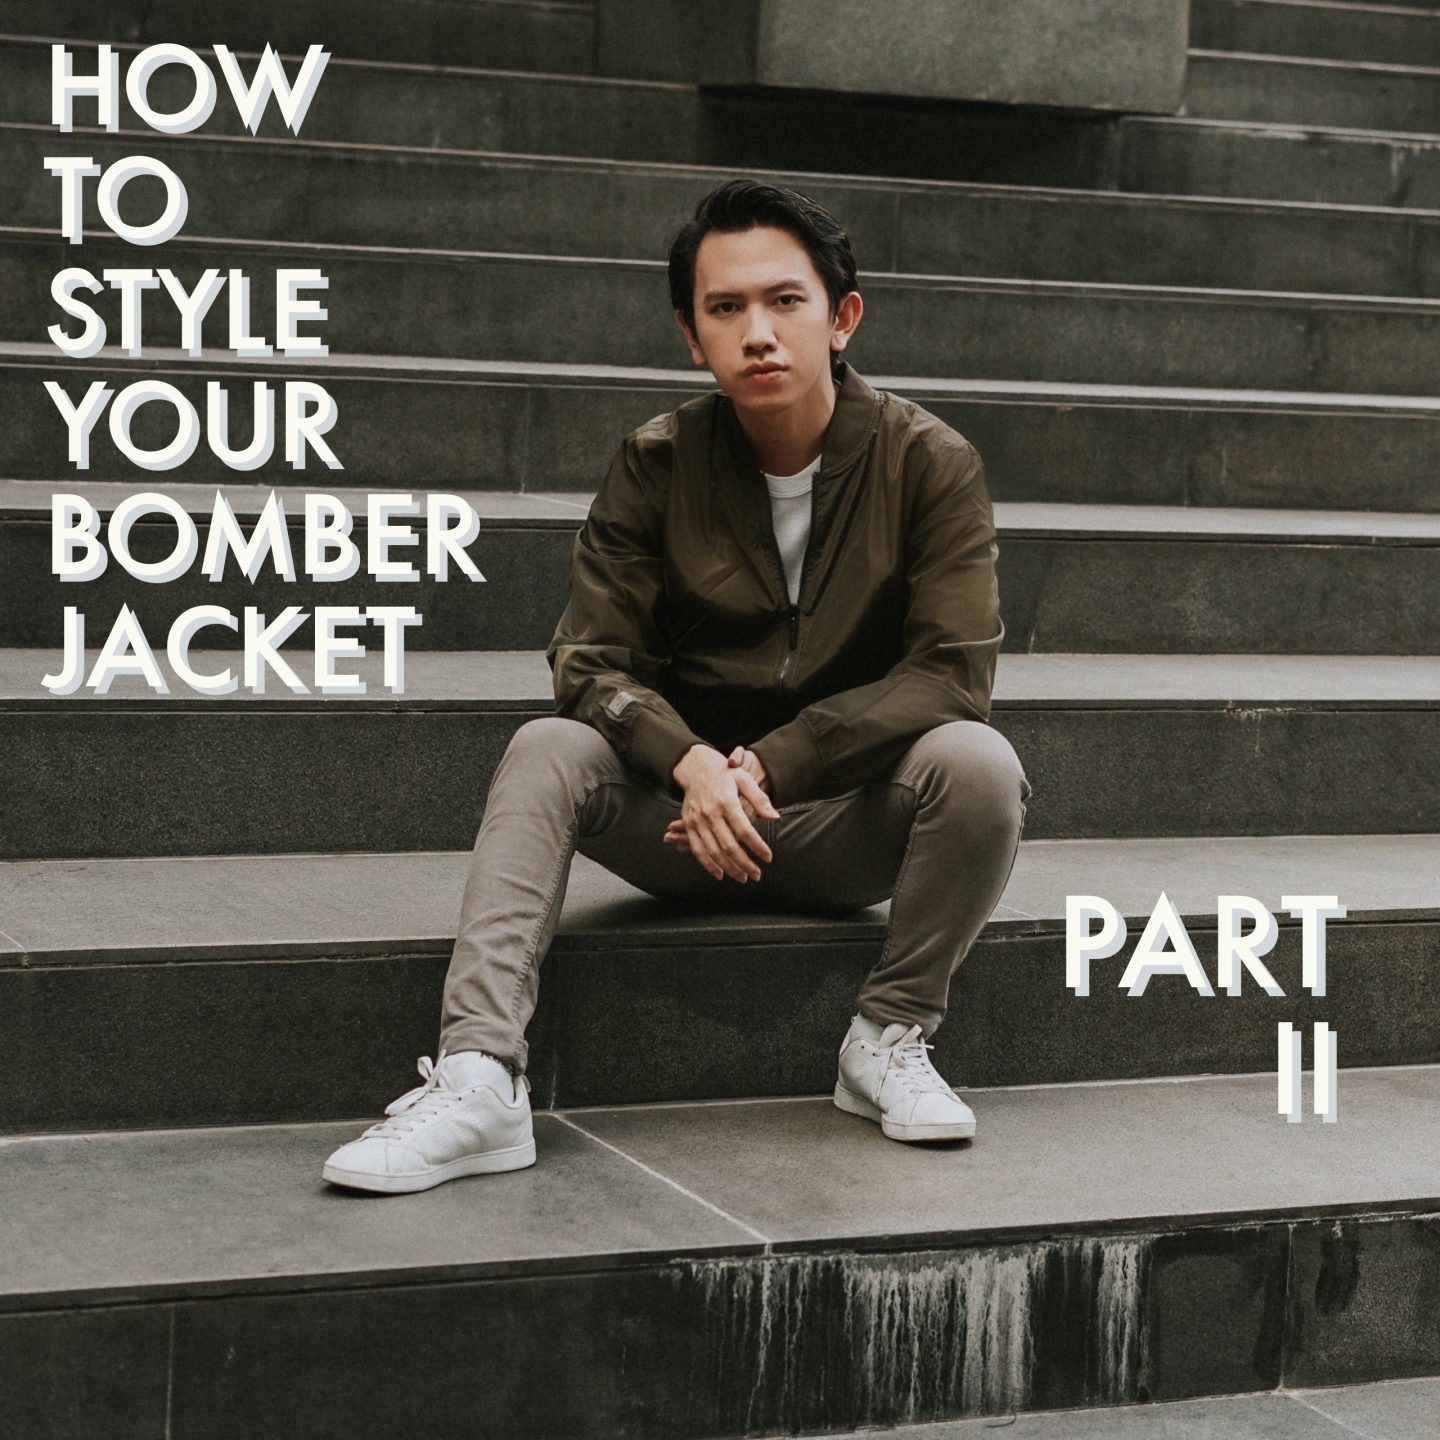 HOW TO STYLE YOUR BOMBER JACKET PART II